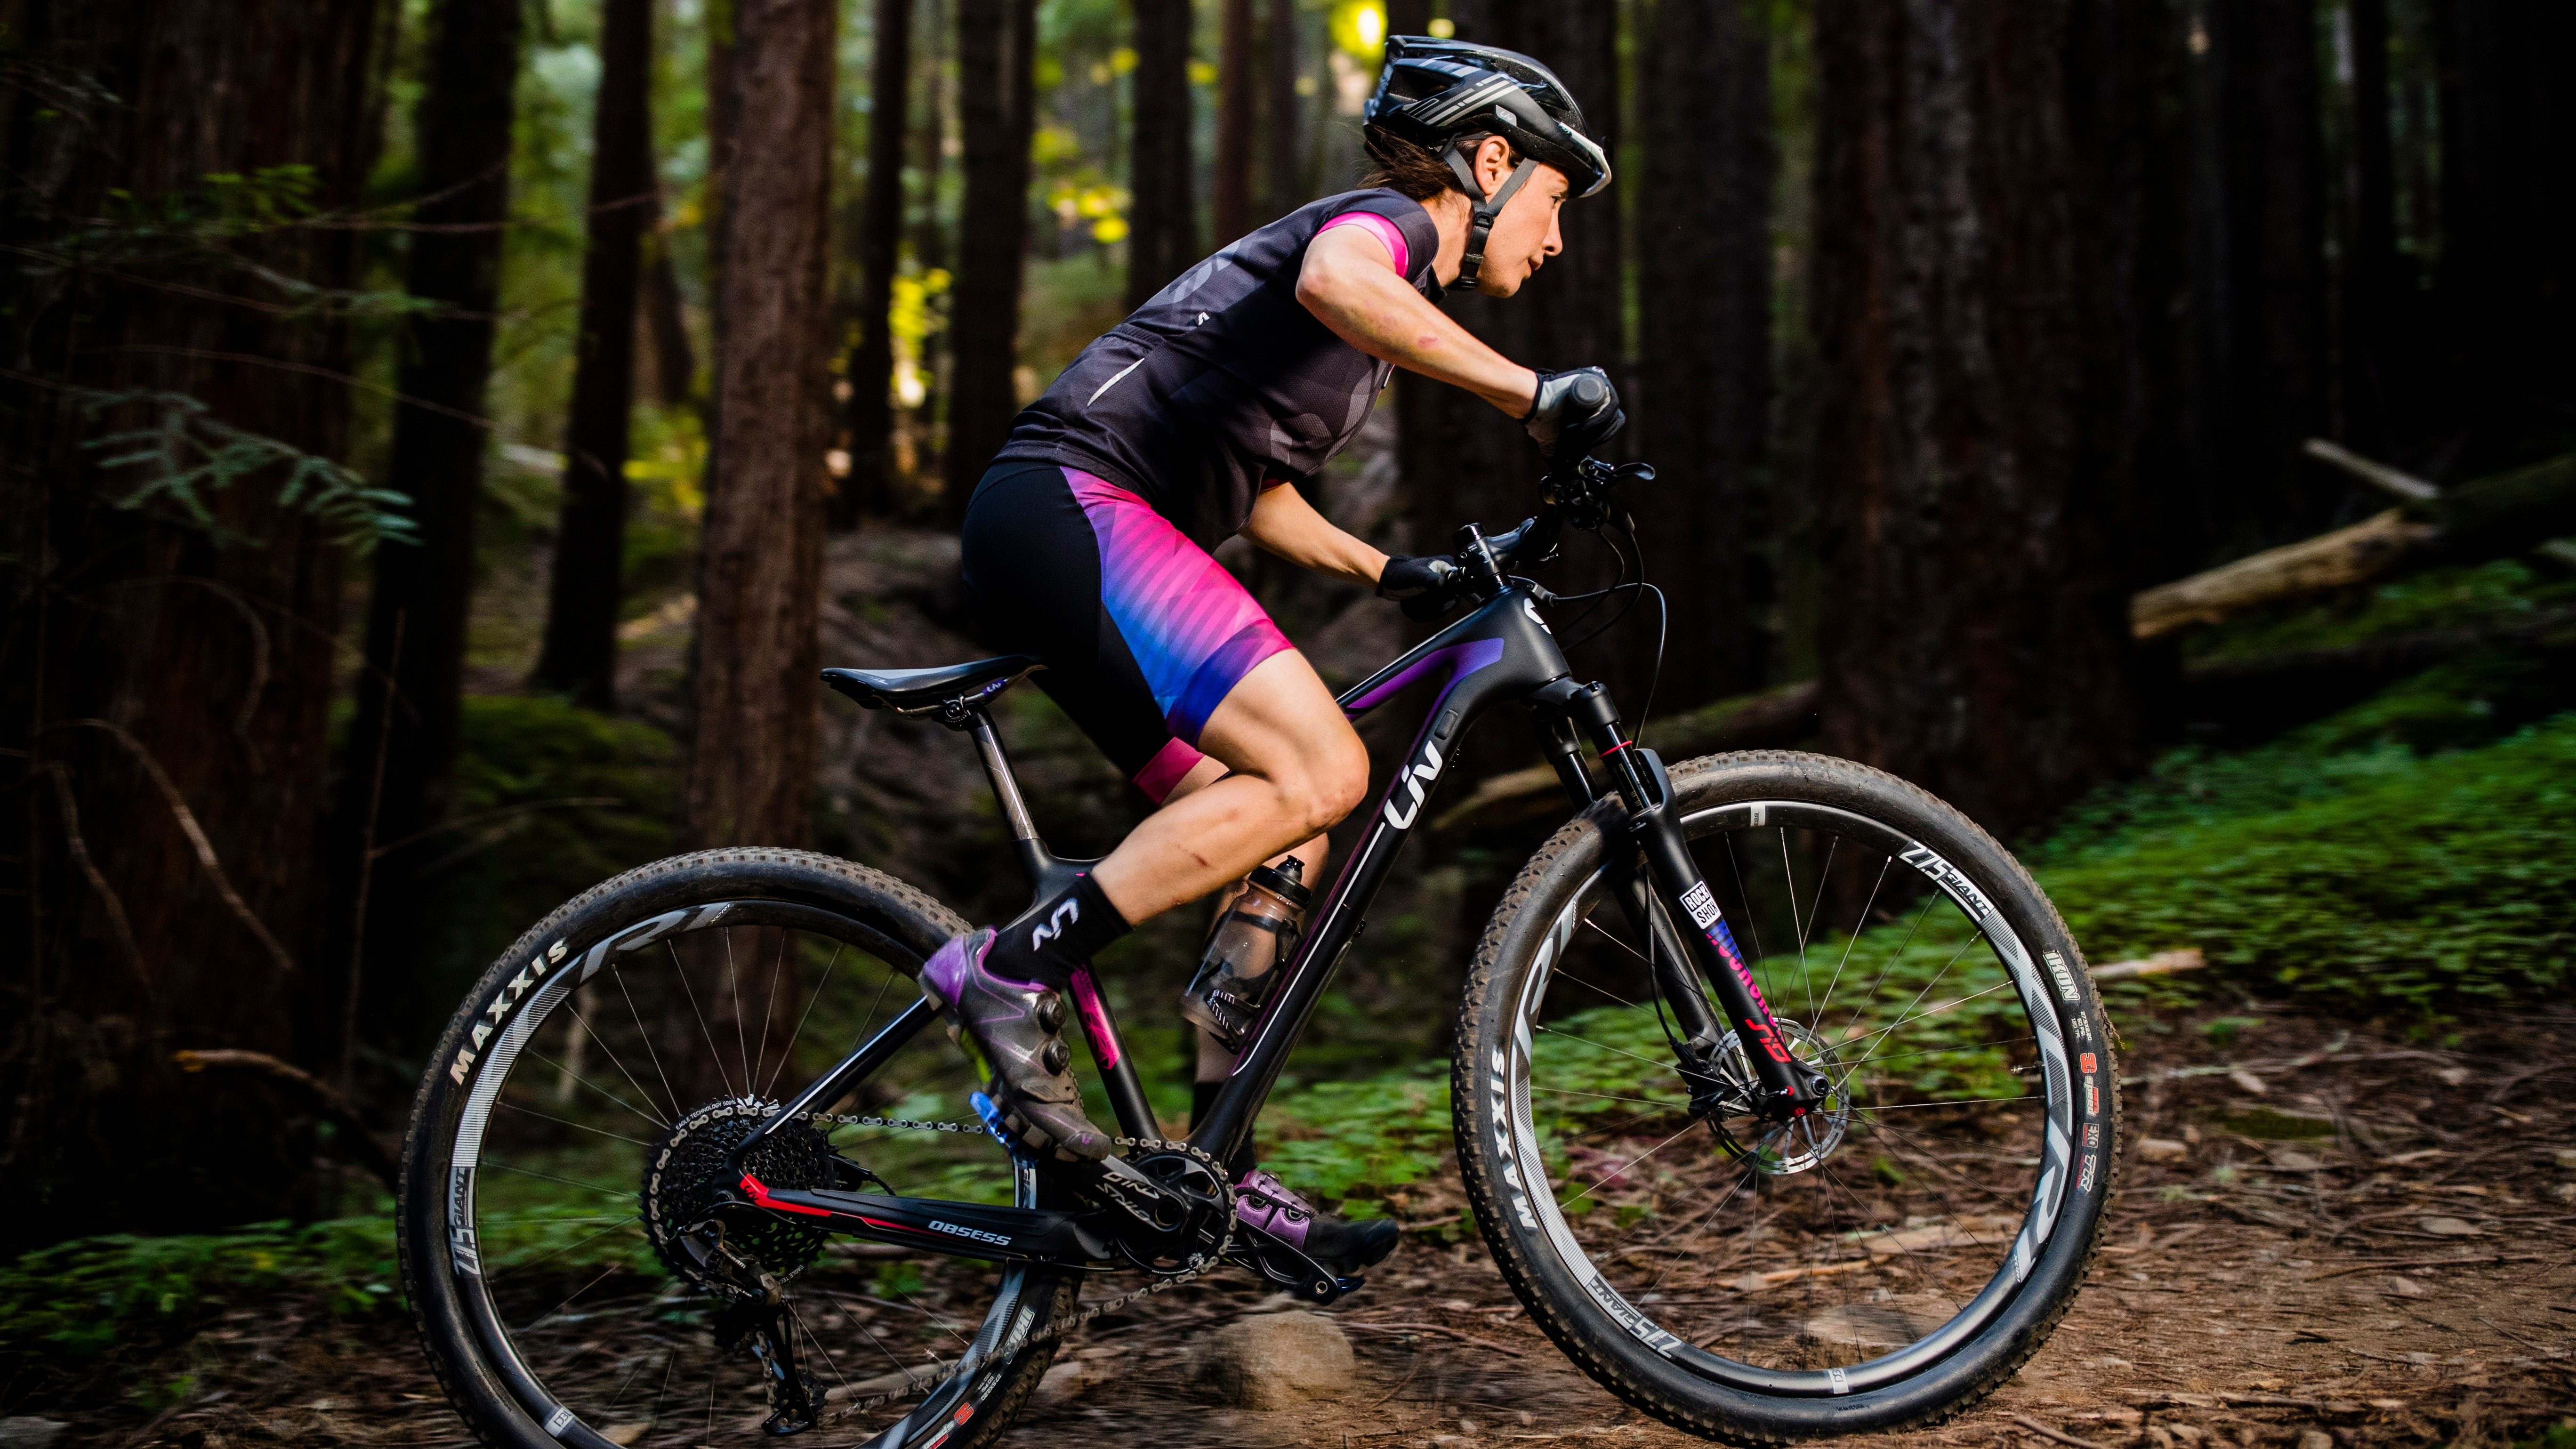 Liv believes that to get the best riding experience, women benefit from a bespoke frame